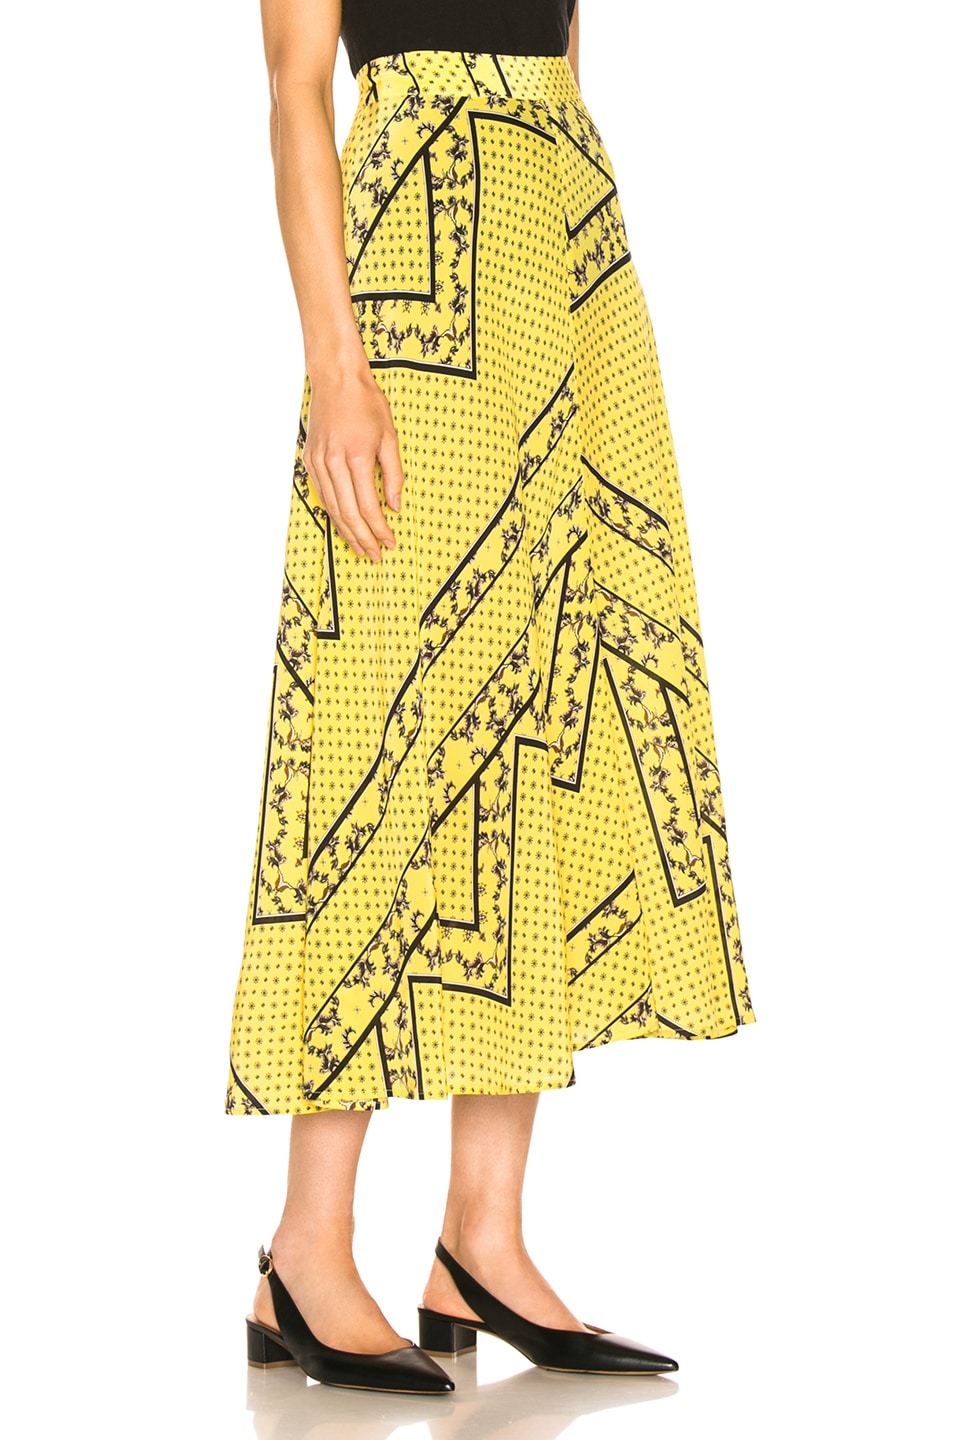 908079be8 Image 2 of Ganni Silk Mix Skirt in Minion Yellow